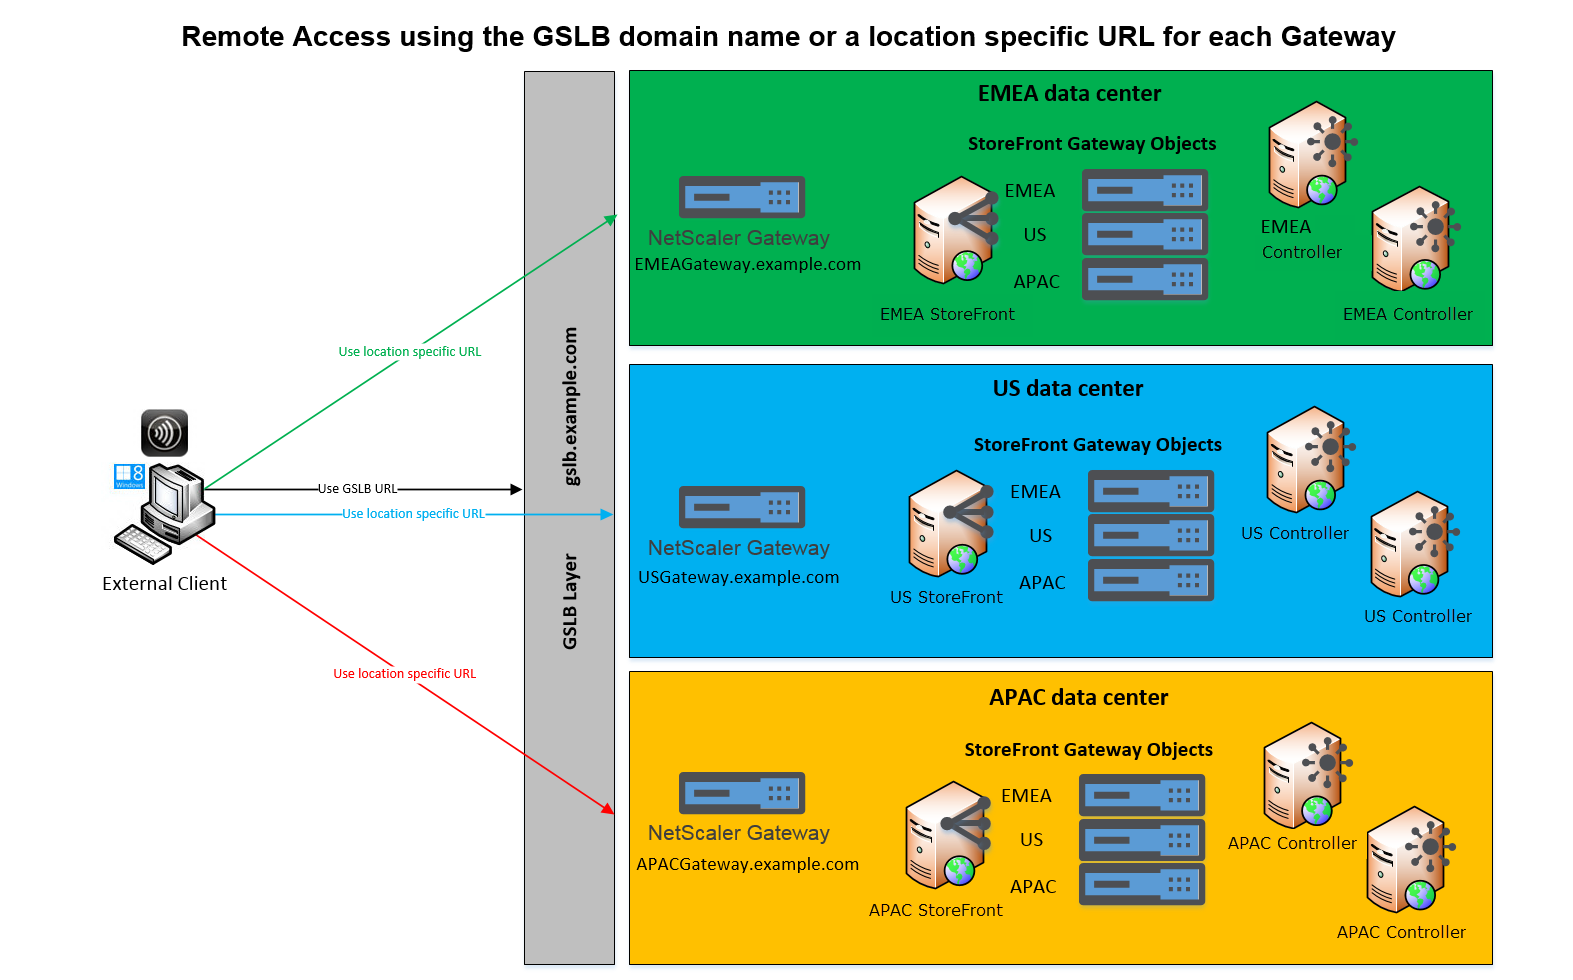 Configure two URLs for the same NetScaler Gateway